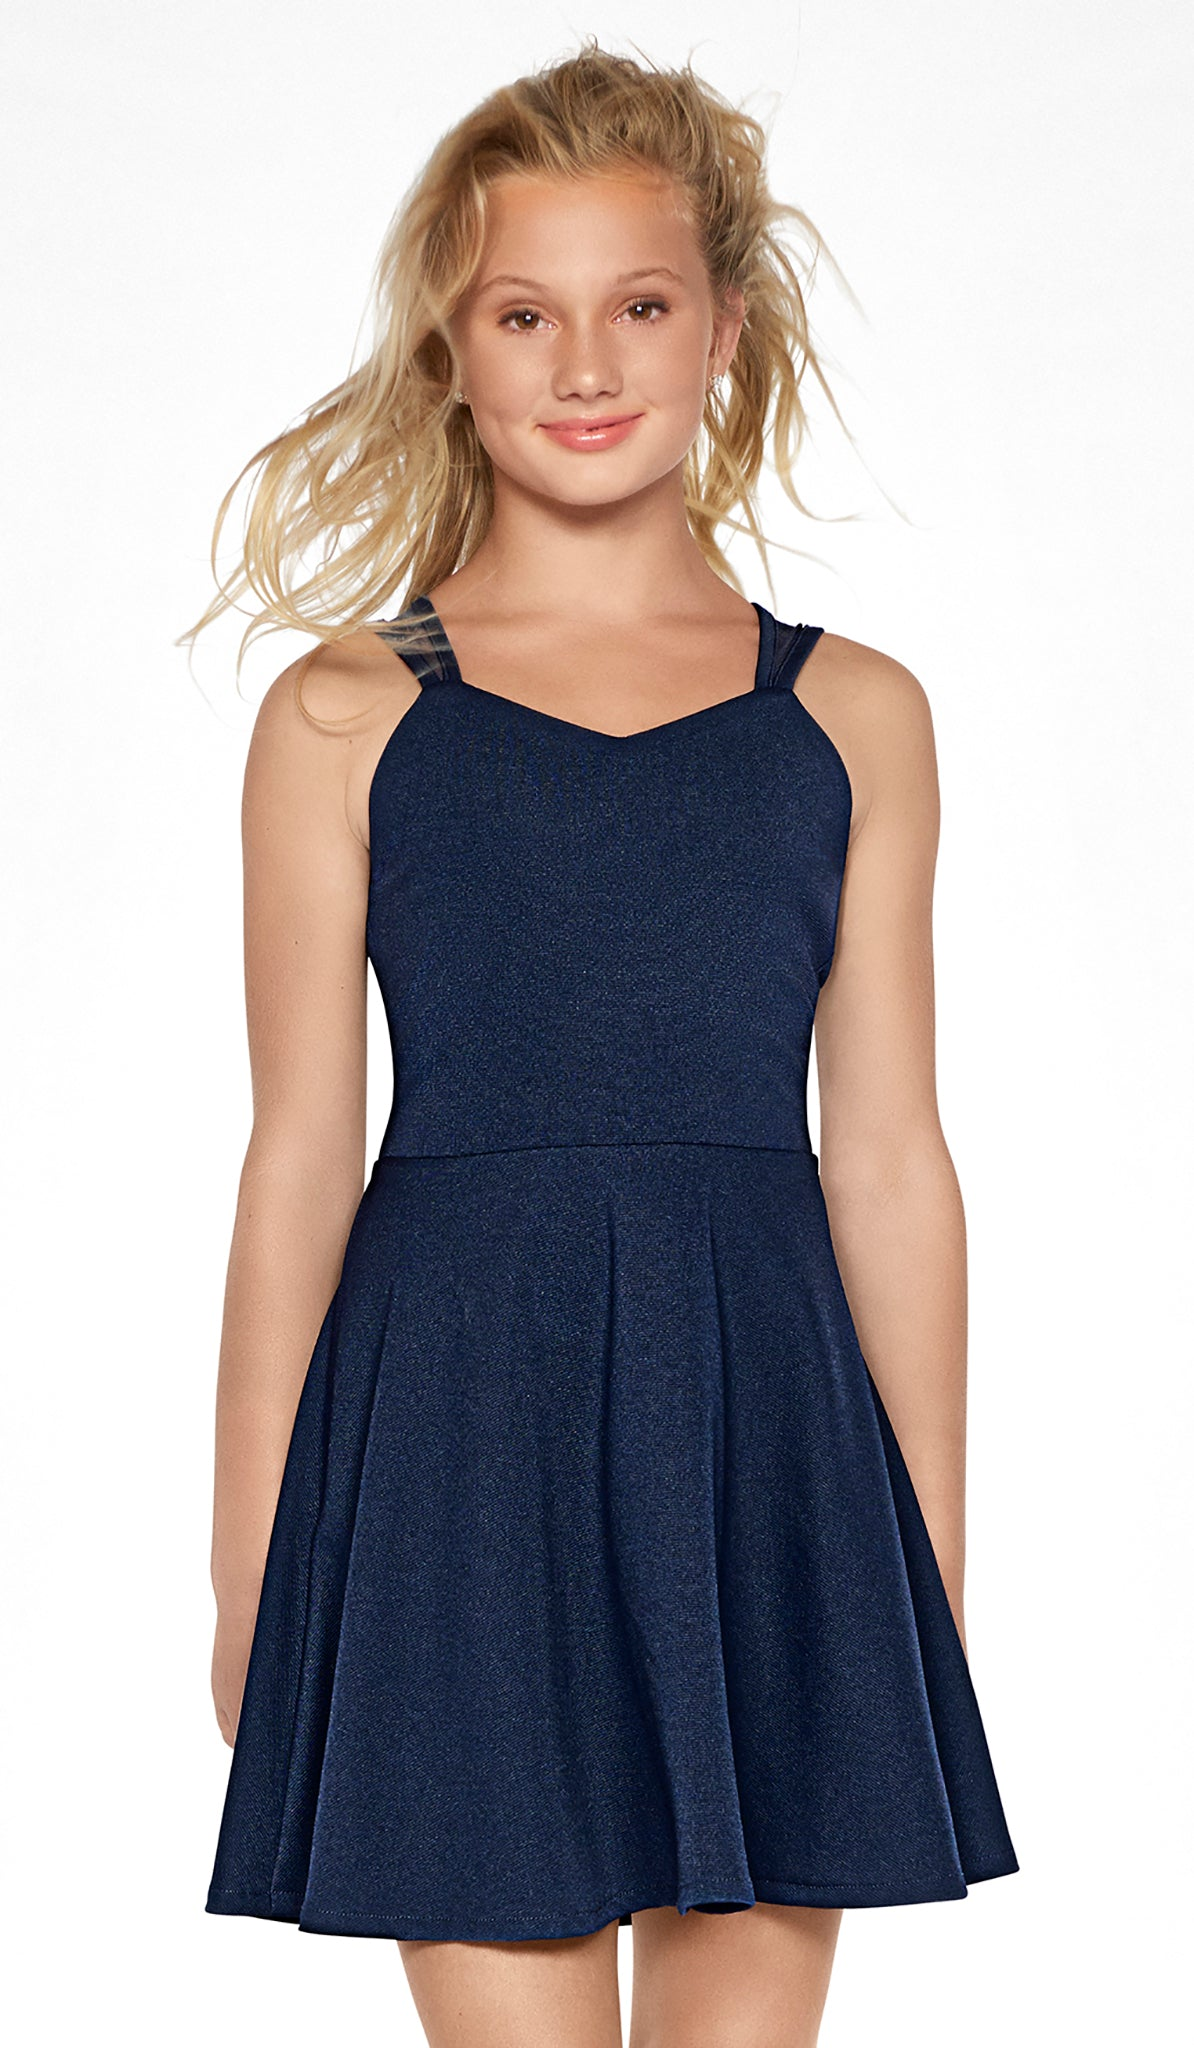 Navy sweetheart neck fit and flare textured stretch dress with mesh strap detail Sally Miller Jackie Dress Tween